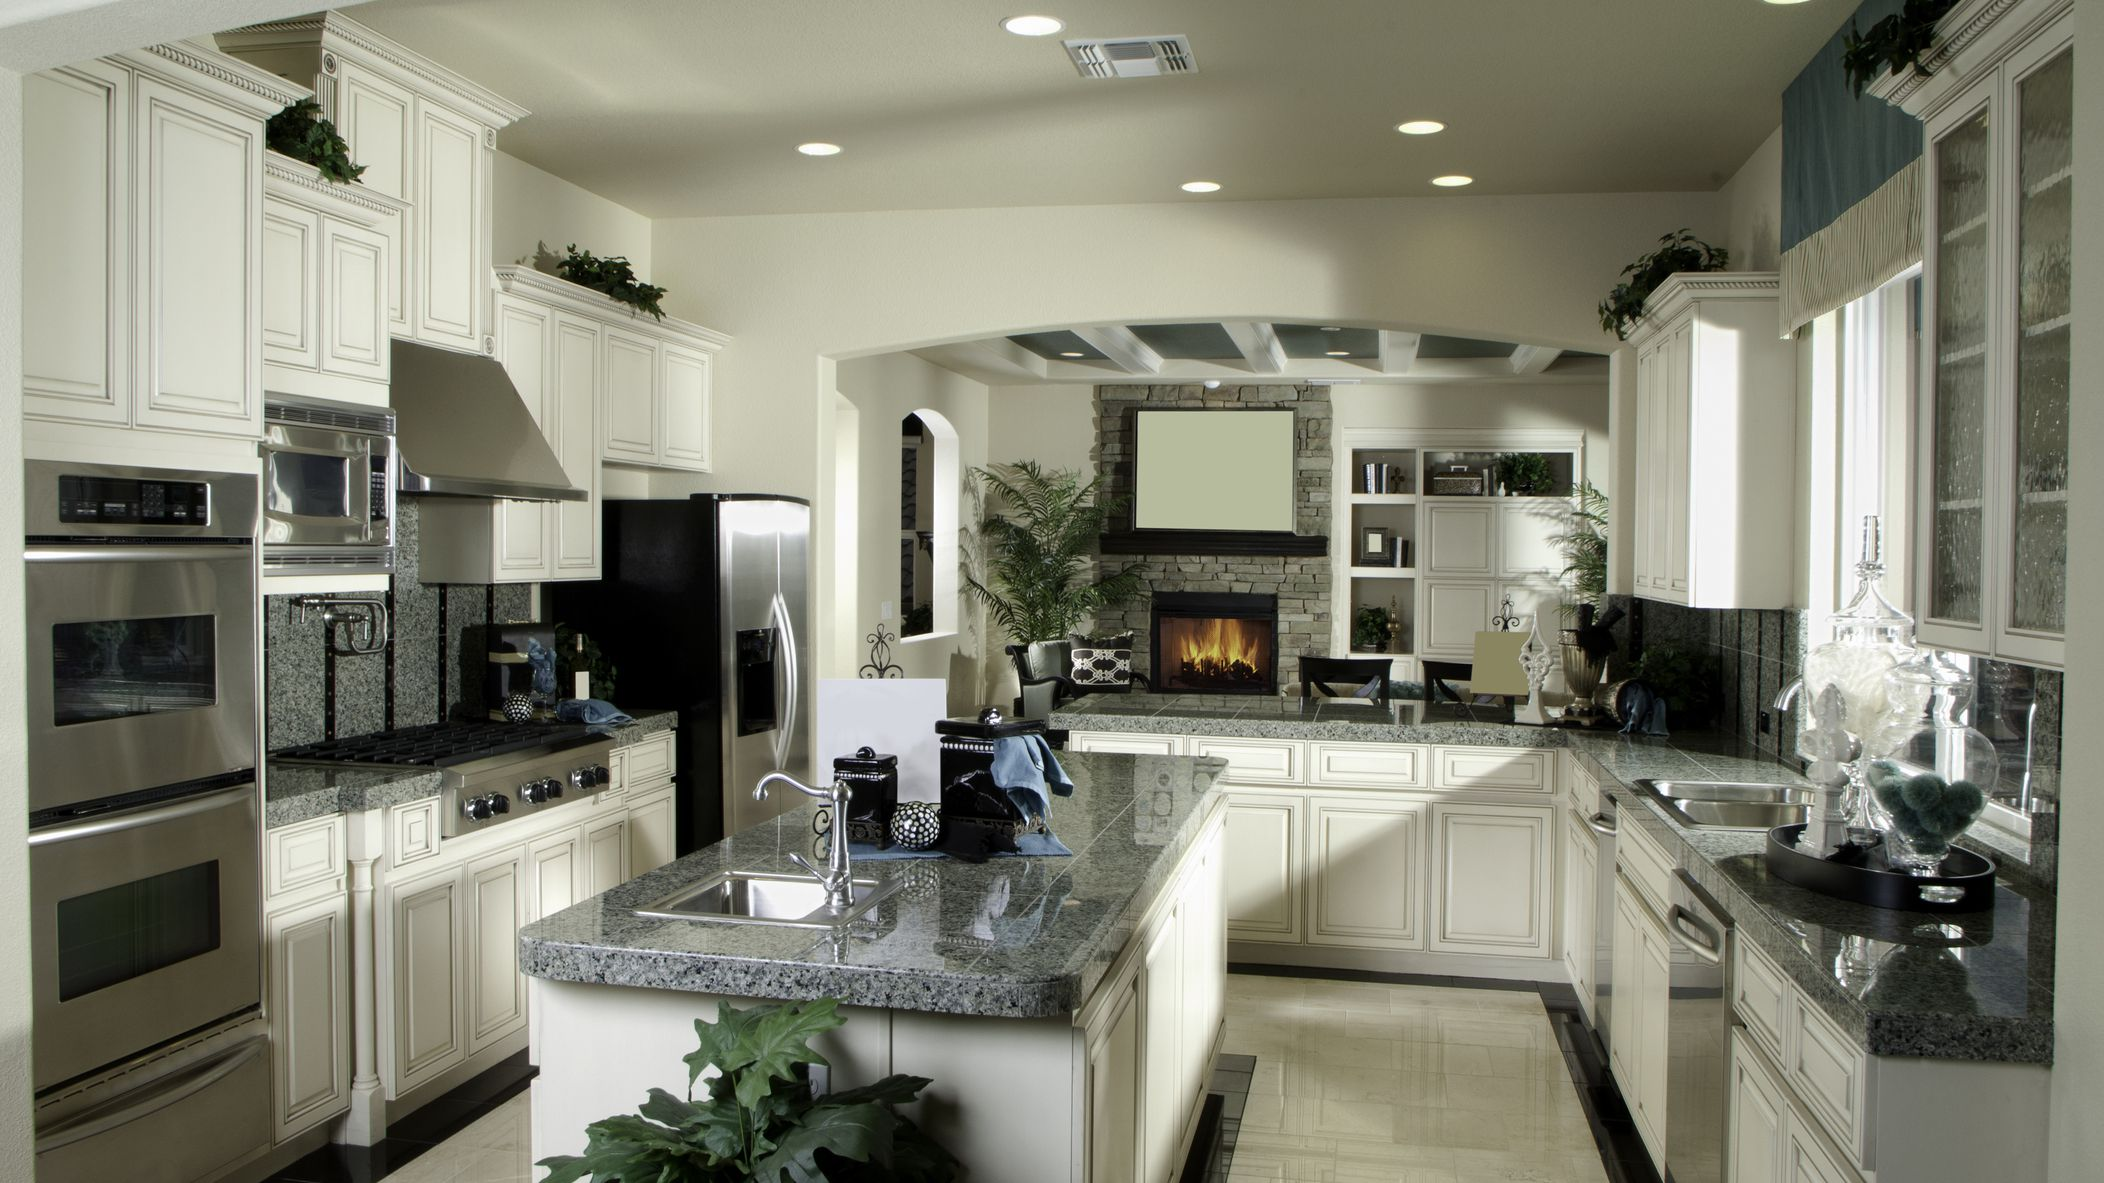 5 Wise Tips for Choosing New Appliance for Your Kitchen